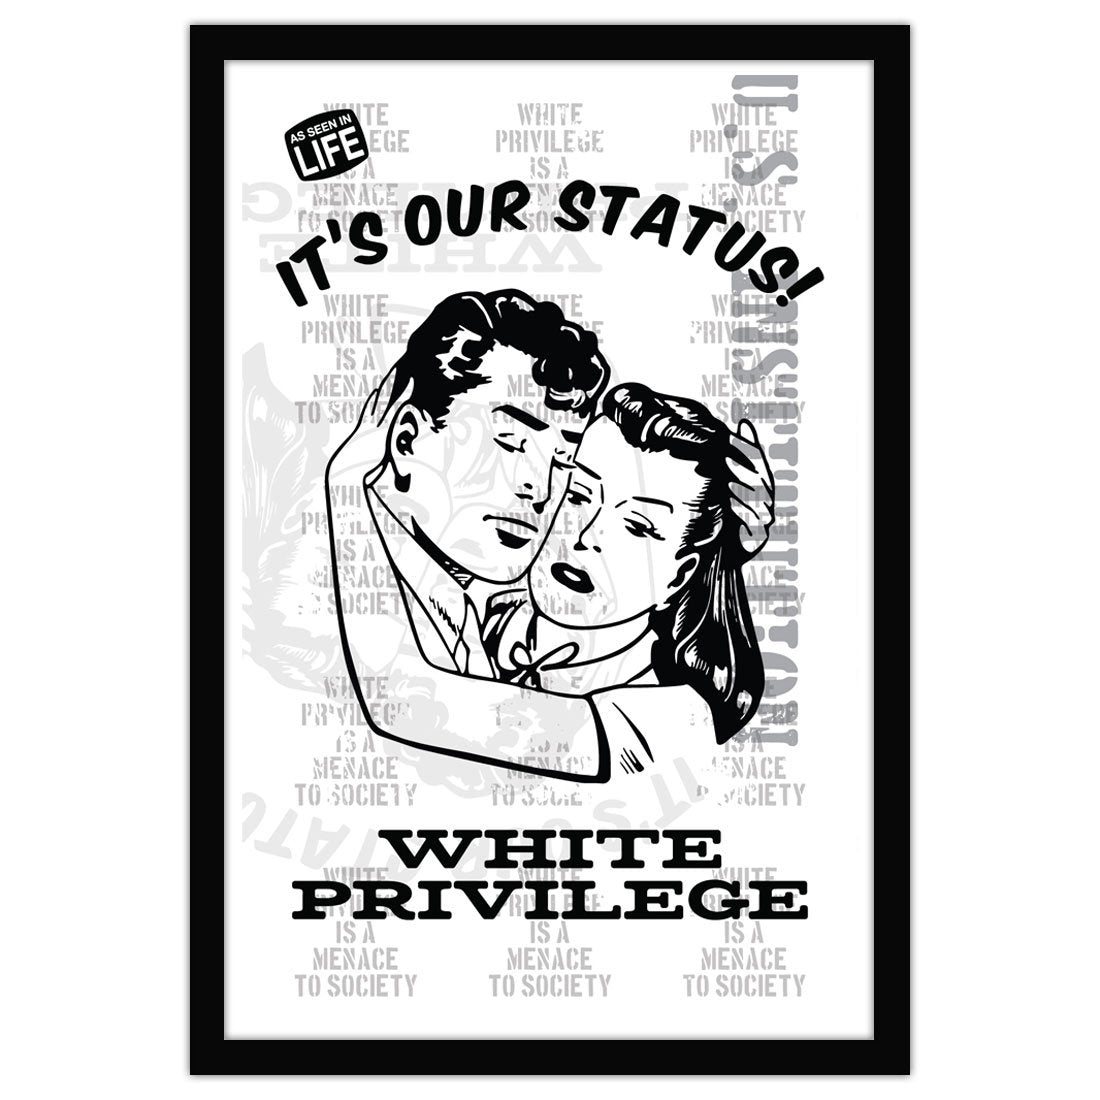 David Bernie Shop Fine Art Print Poster 11x17 18x24 36x48 White Privilege It's Our Status